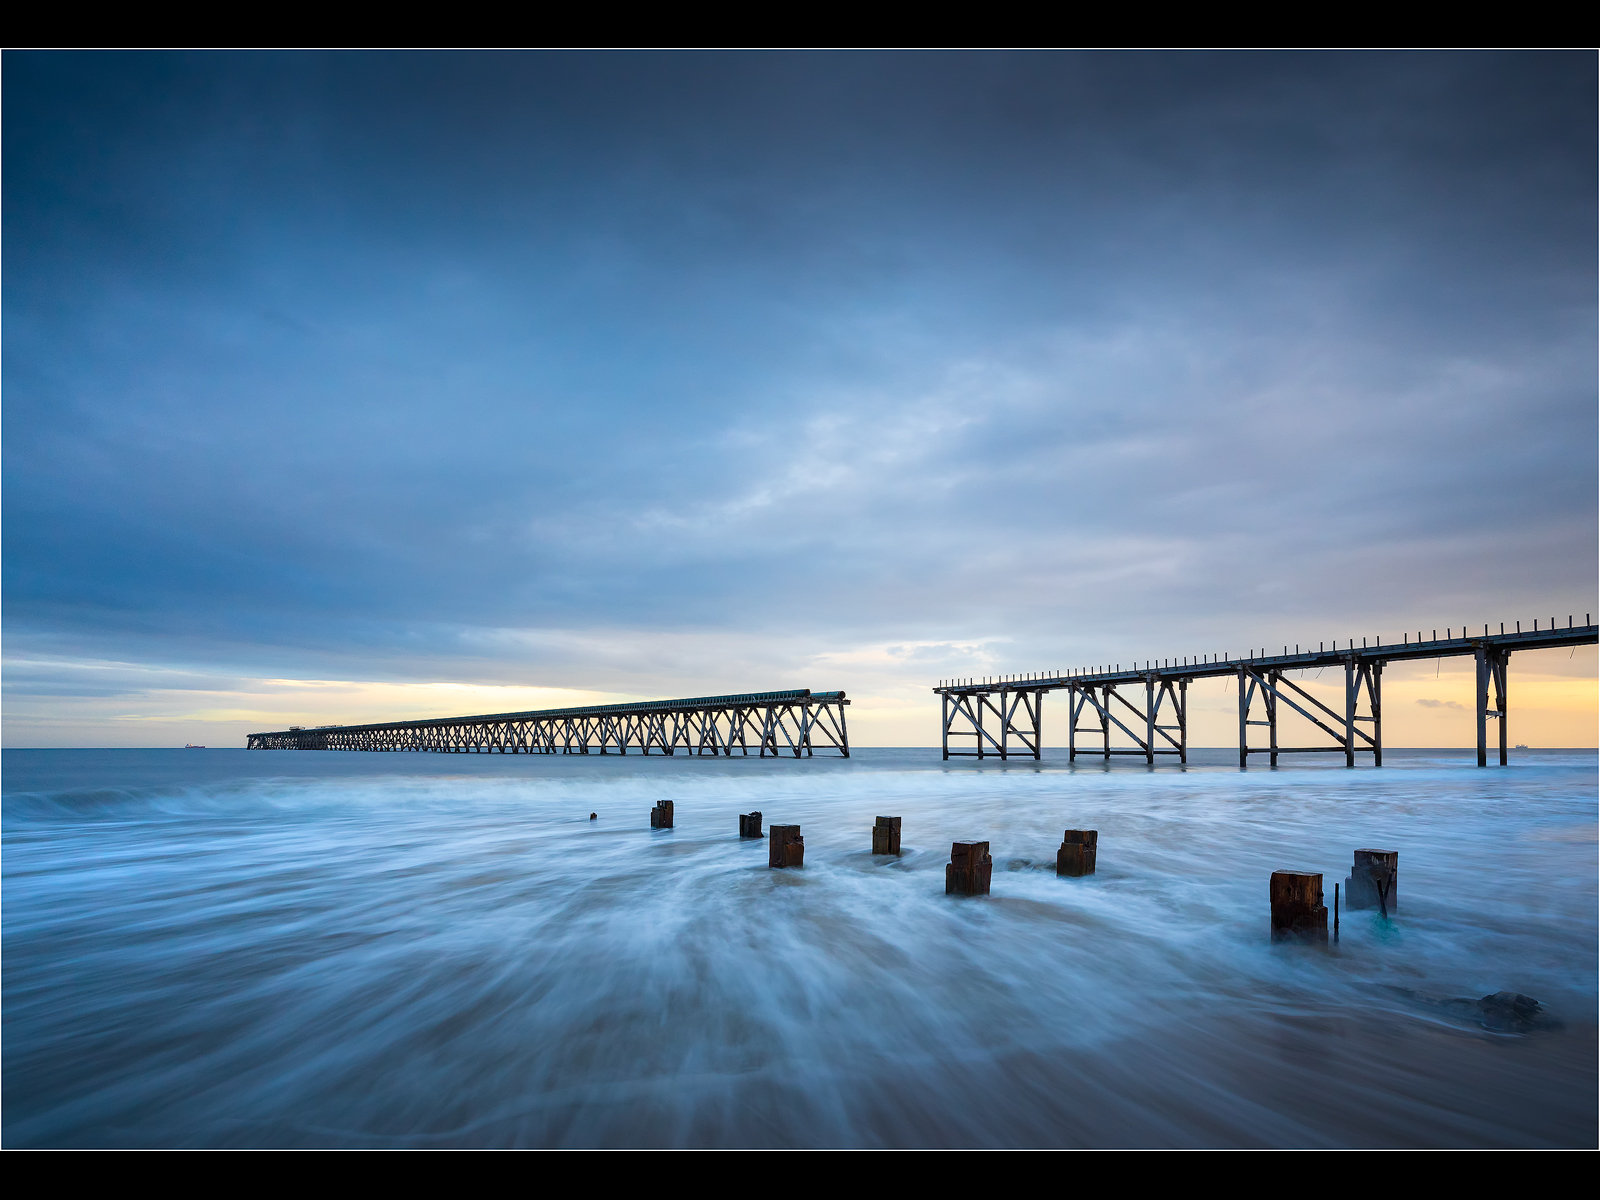 High_Tide_At_Steetley_Pier.jpg